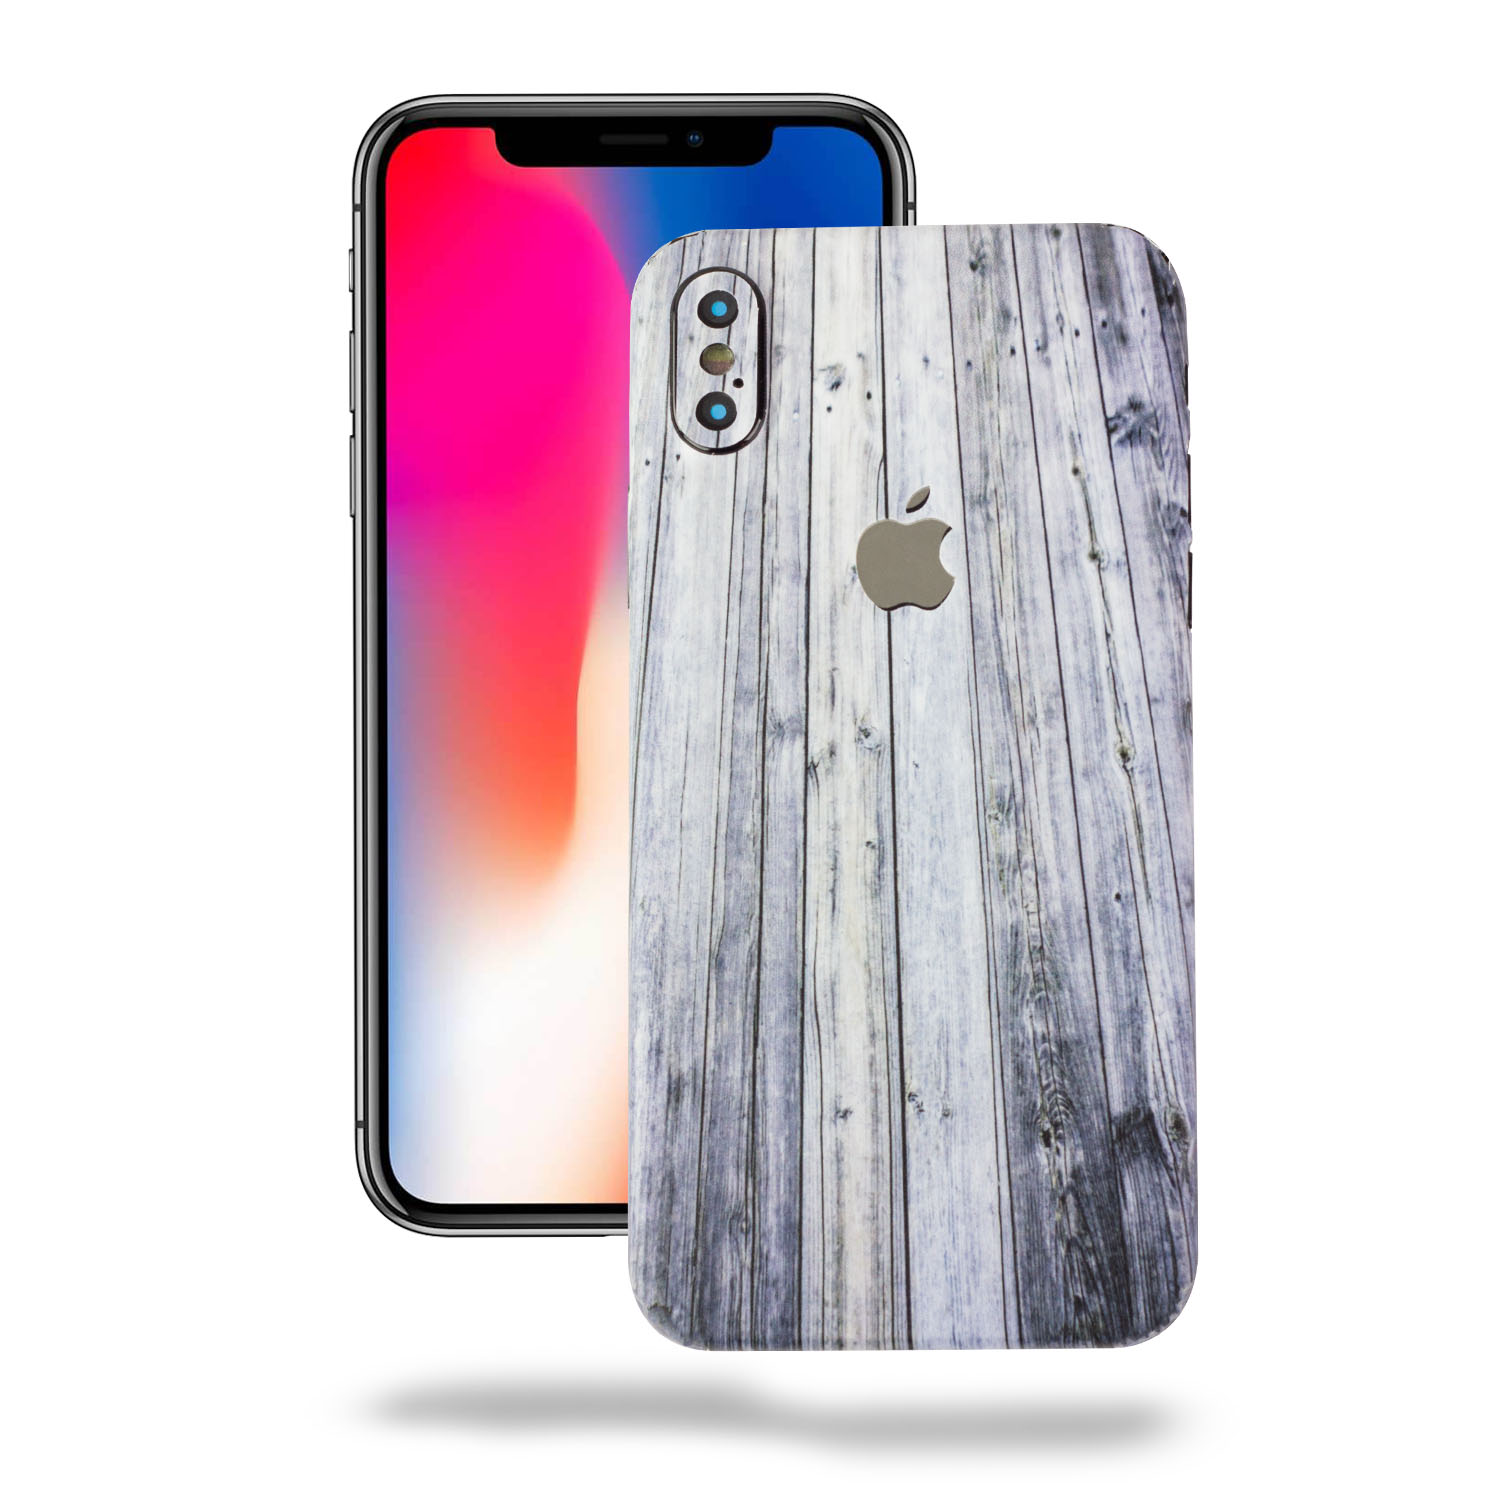 TortugaAmor Apple iPhone X Vinyl Skin, Black Leather Texture Protective Vinyl Skin Cover Wrap Sticker Skins 2Pack [ 1 Back & 4 Camera ]